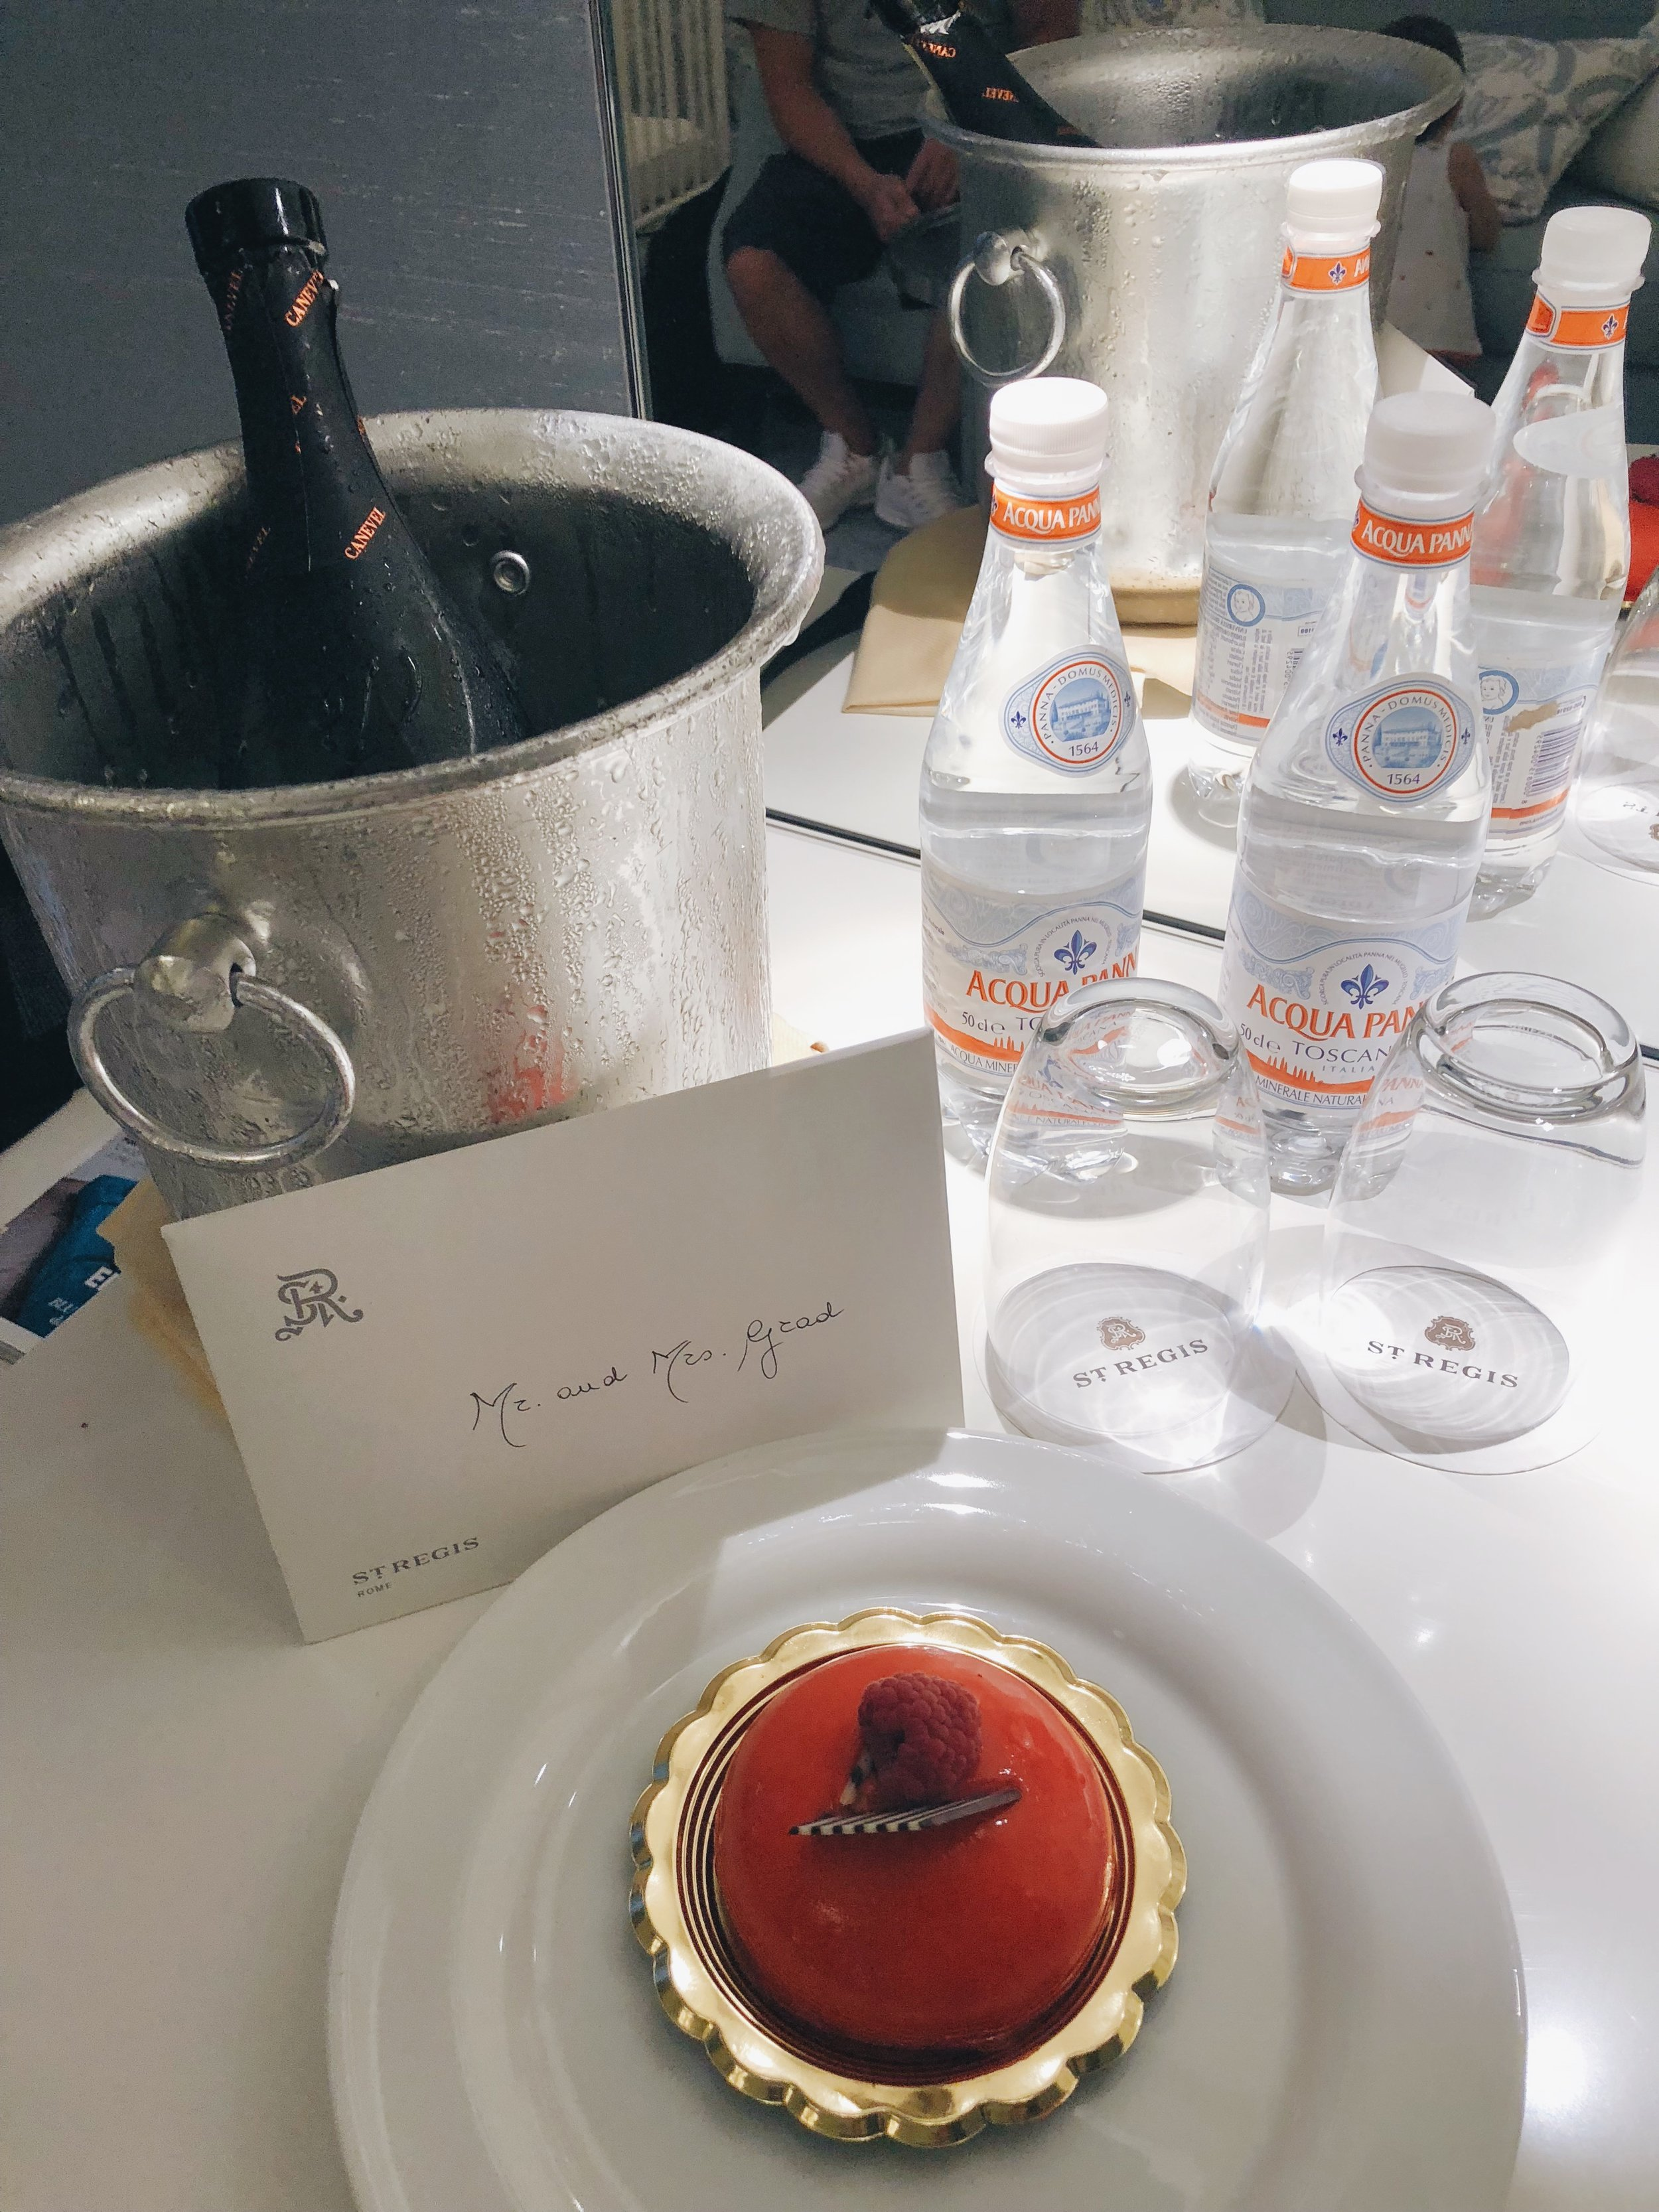 The staff was sweet enough to send us a small cake and bottle of champagne in celebration of our anniversary.